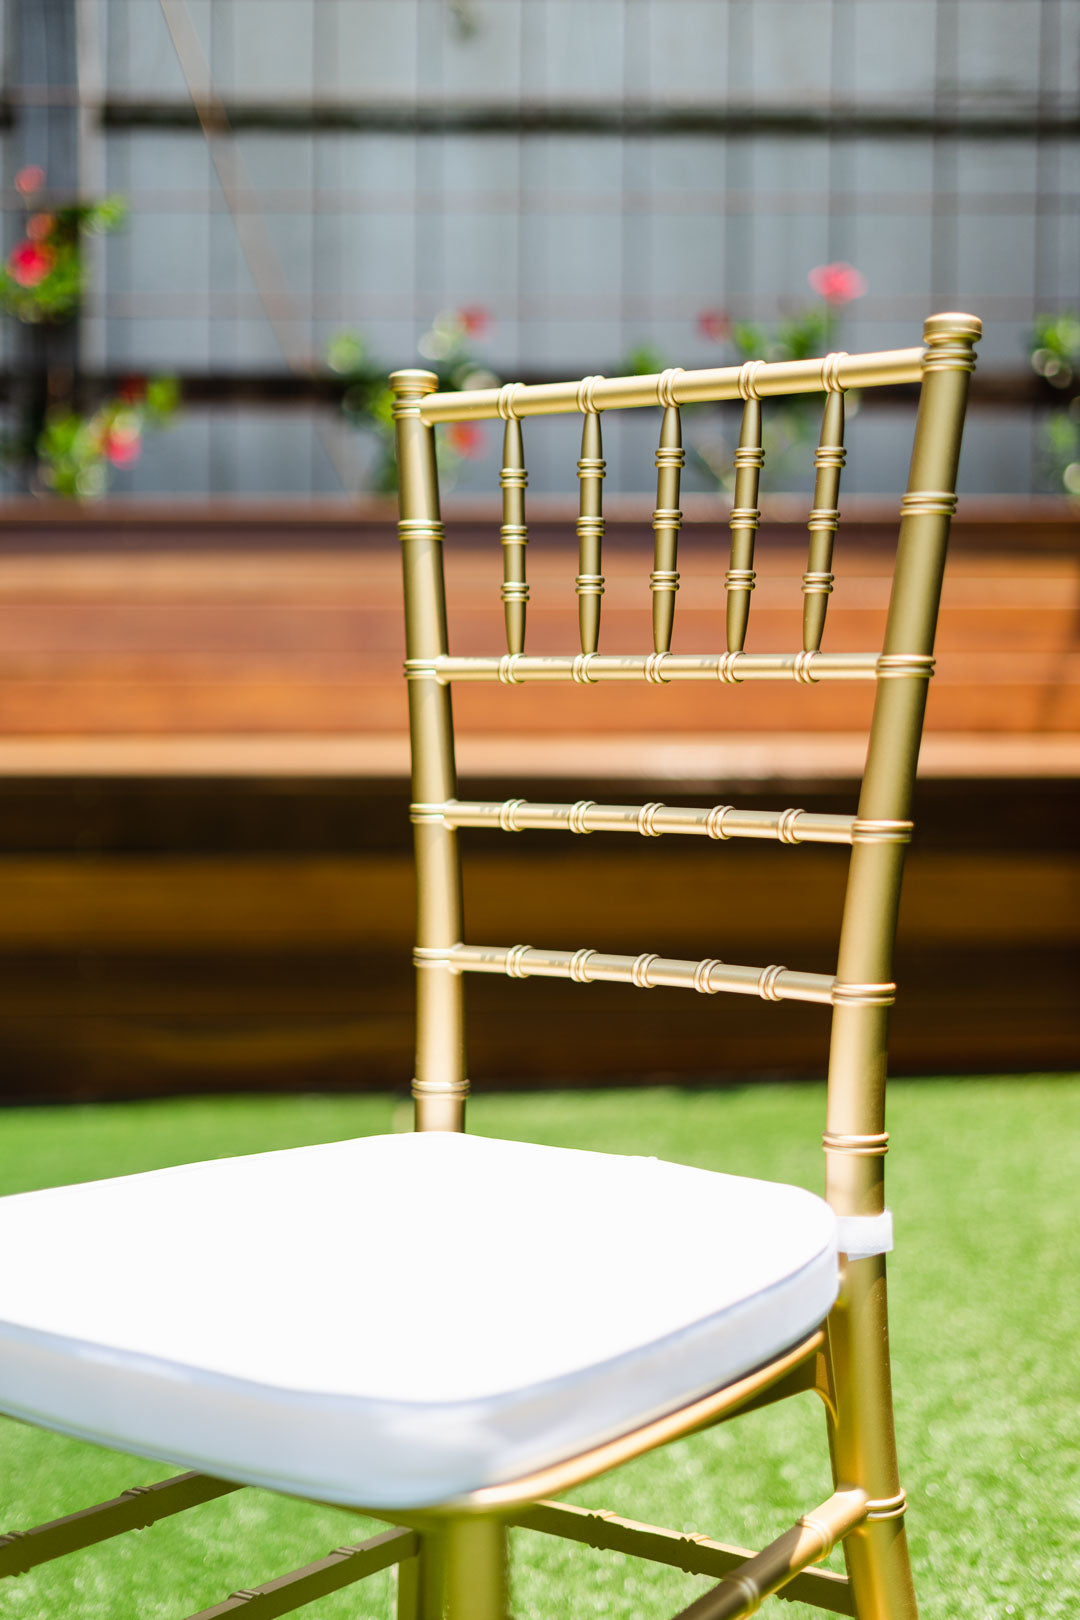 Gold Tiffany Chair | Gold Chiavari Chair | Resin with White Cushion 6 Charis at $65each